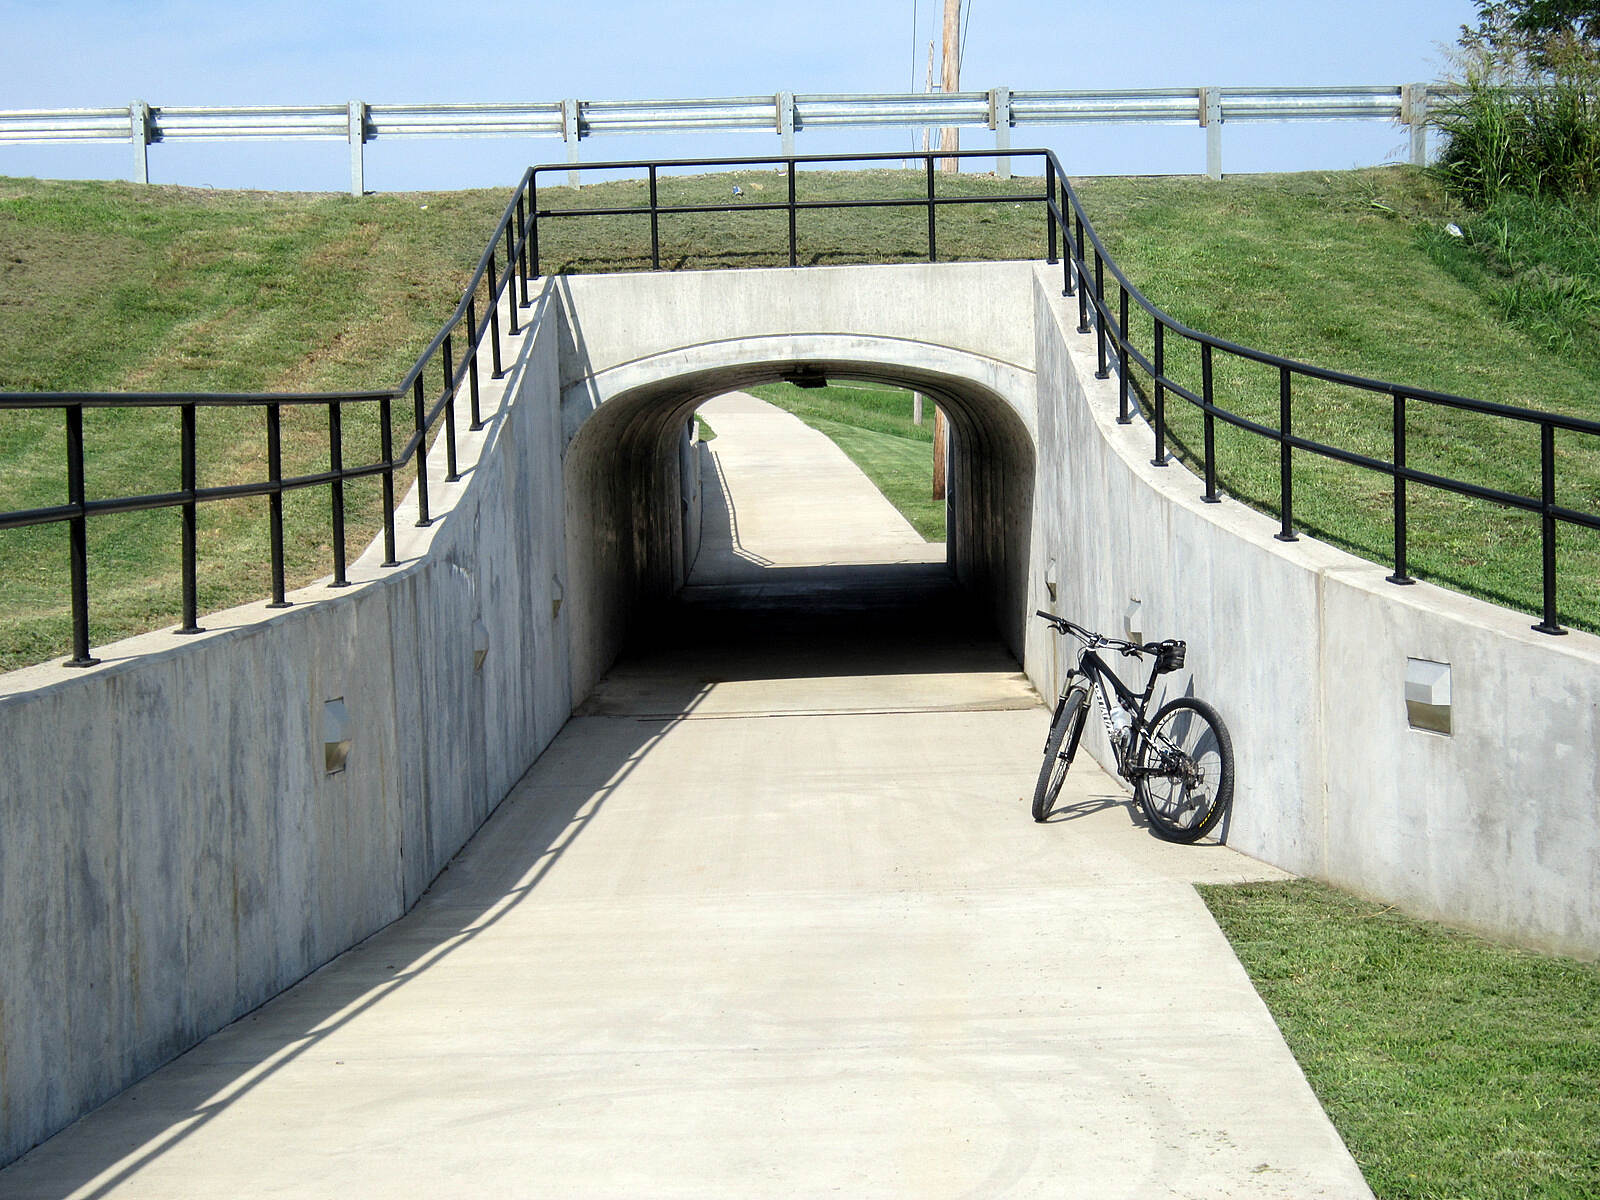 Paducah Greenway  Underpass Underpass with the busy Hwy - 45 on top, this was a great idea putting this in imo.